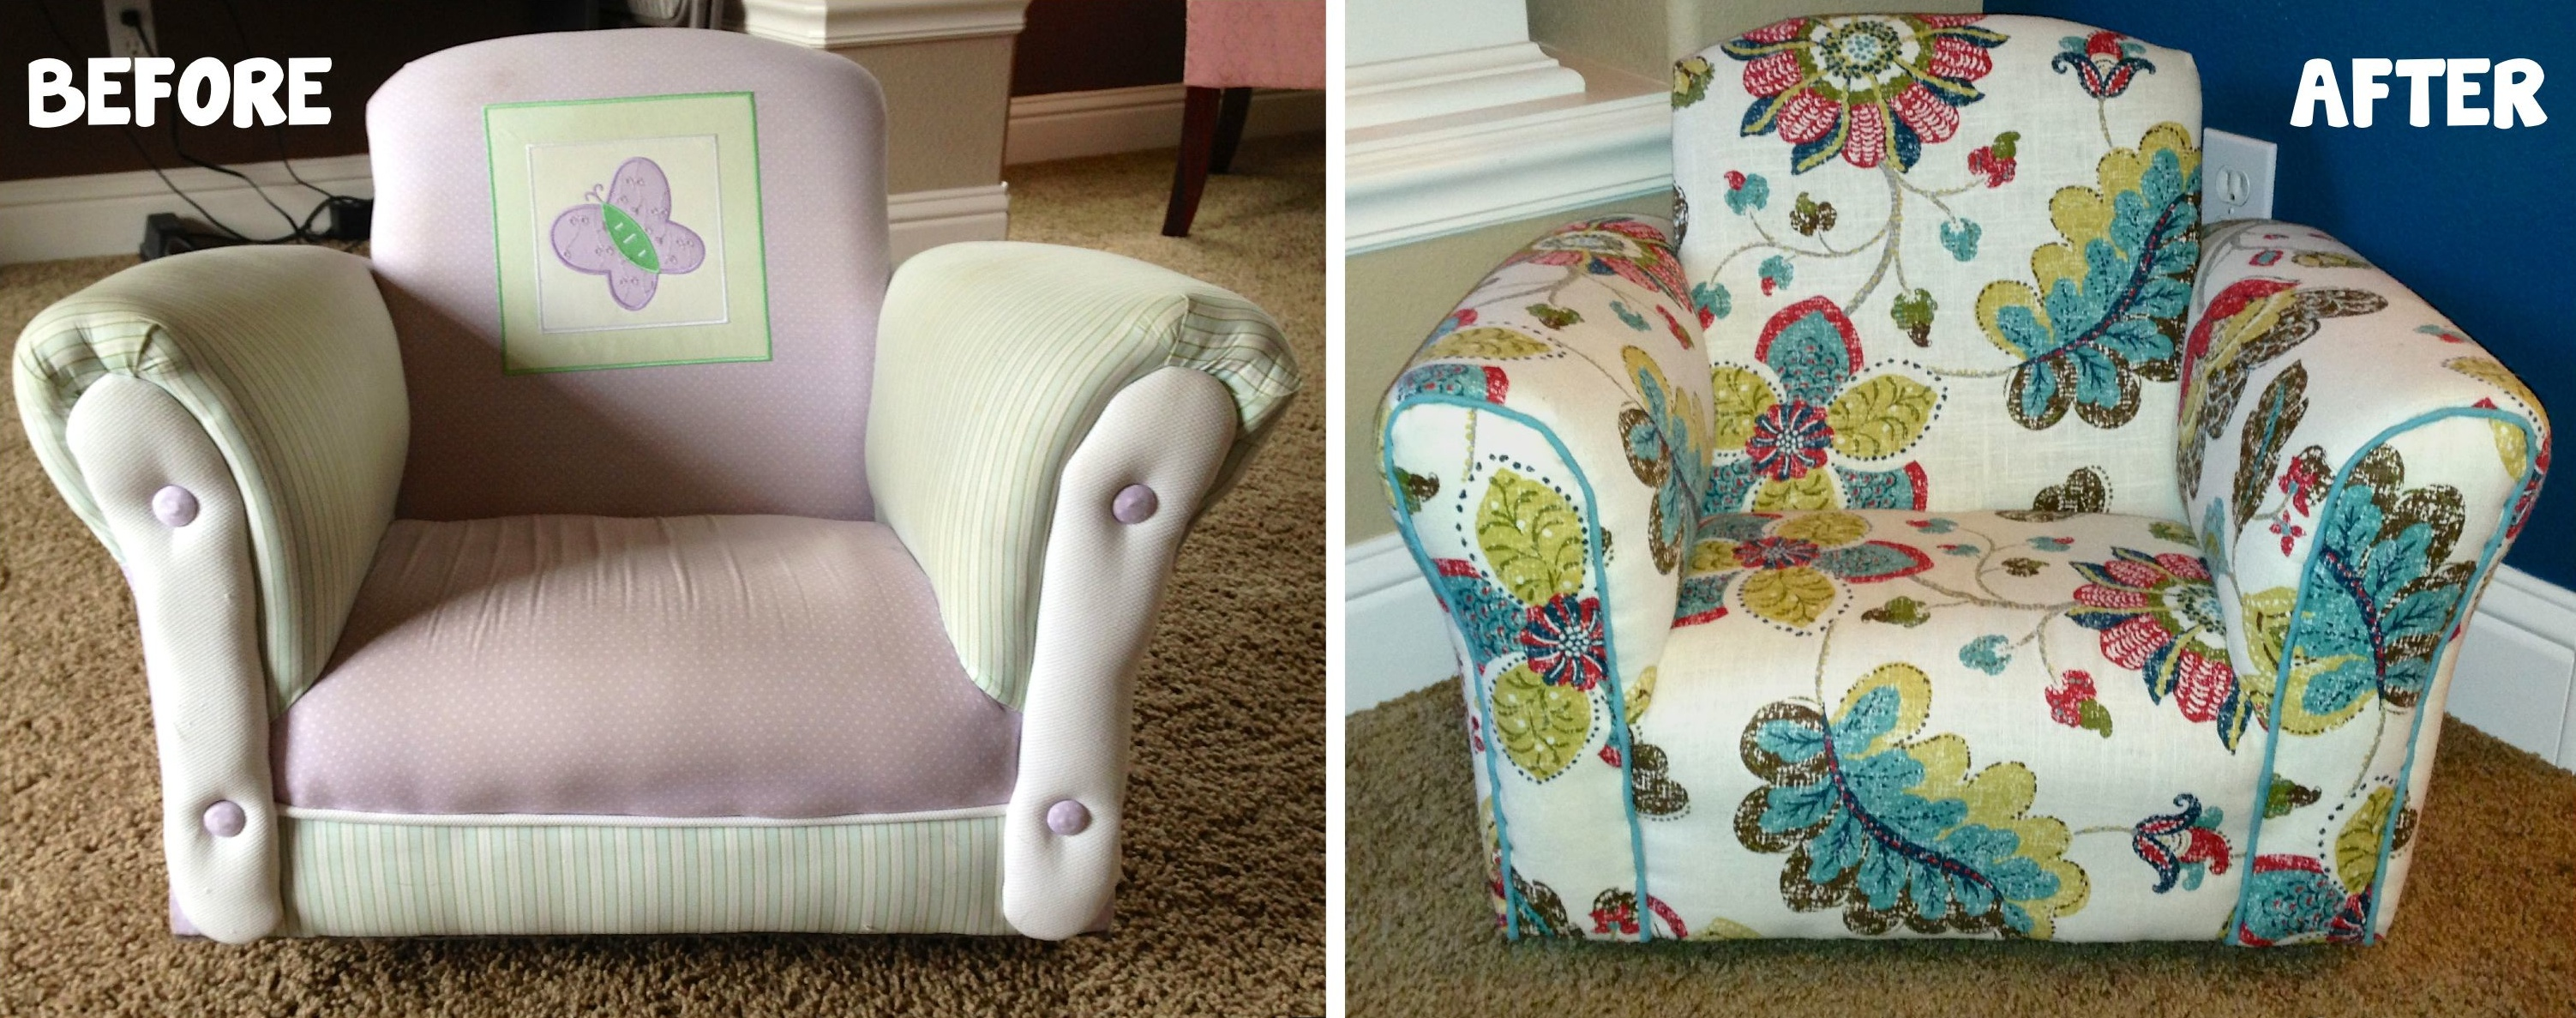 Reupholstering Toddler Chair